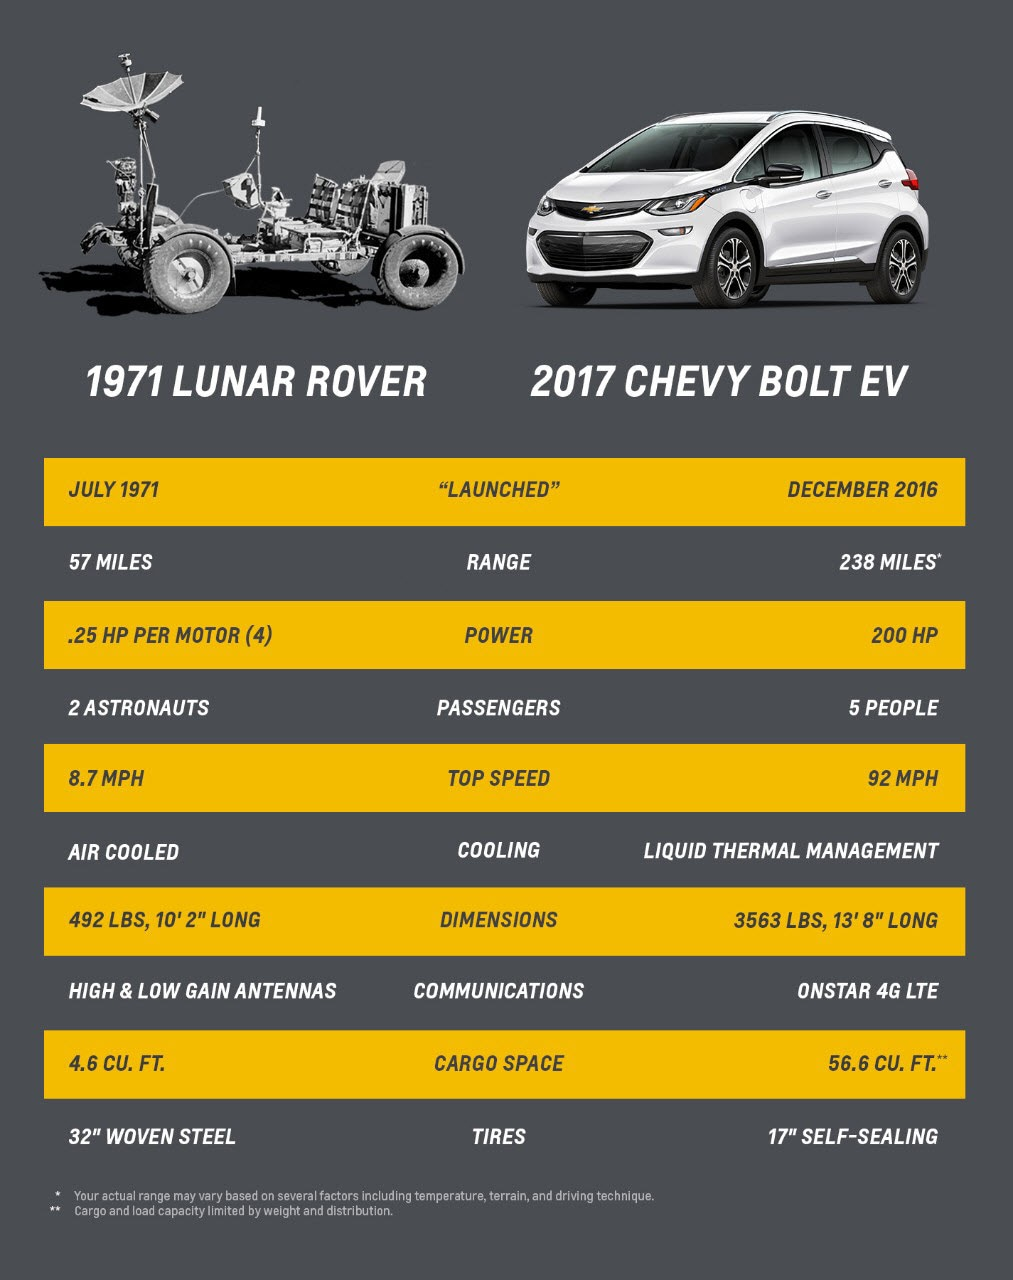 2017 Chevy Bolt & Lunar Rover Comparison